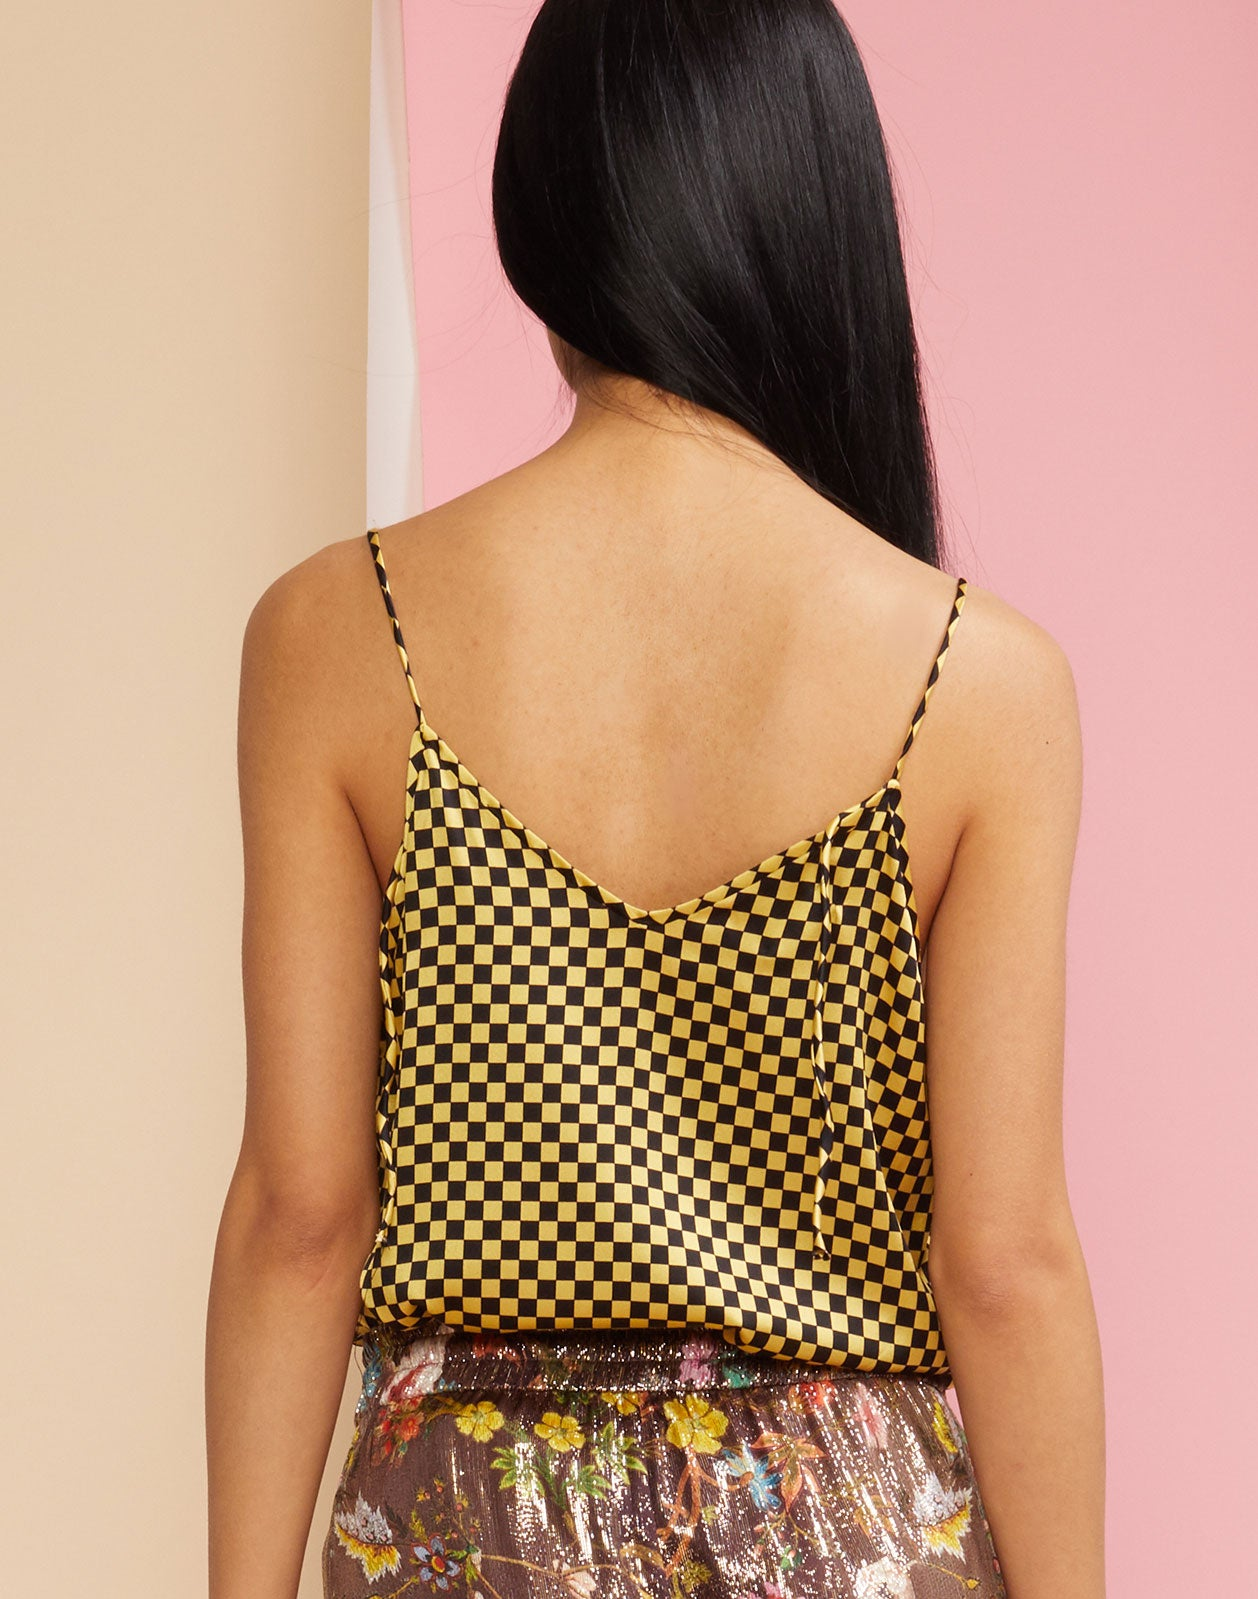 Back view of the Checkmate Tank Top in yellow and black check print.